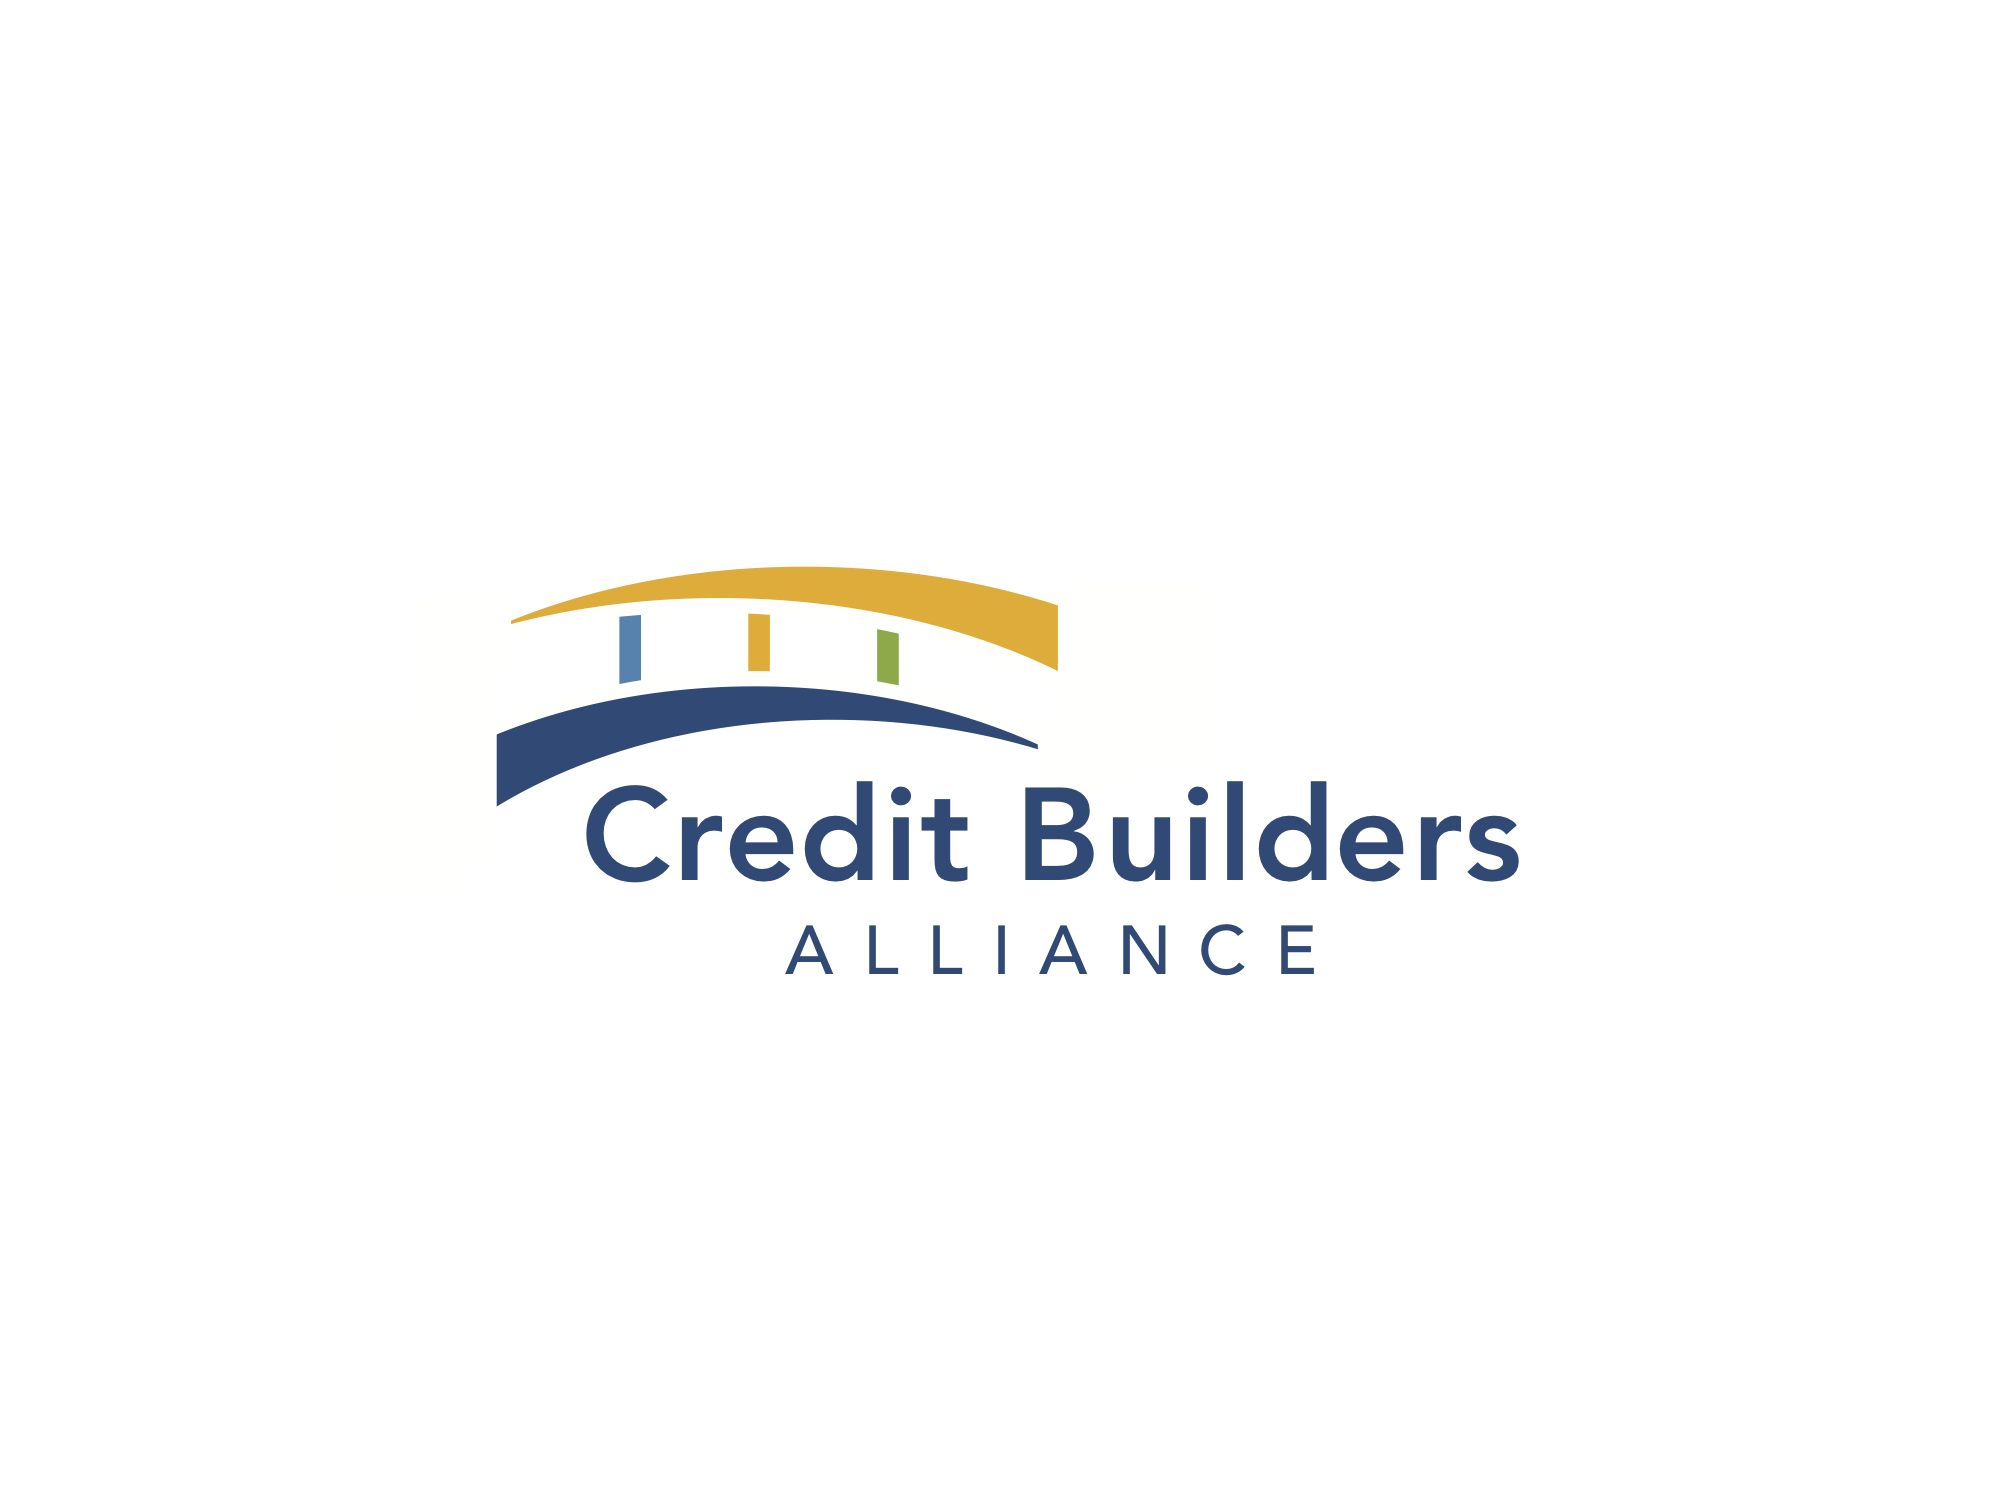 Credit Builders Alliance